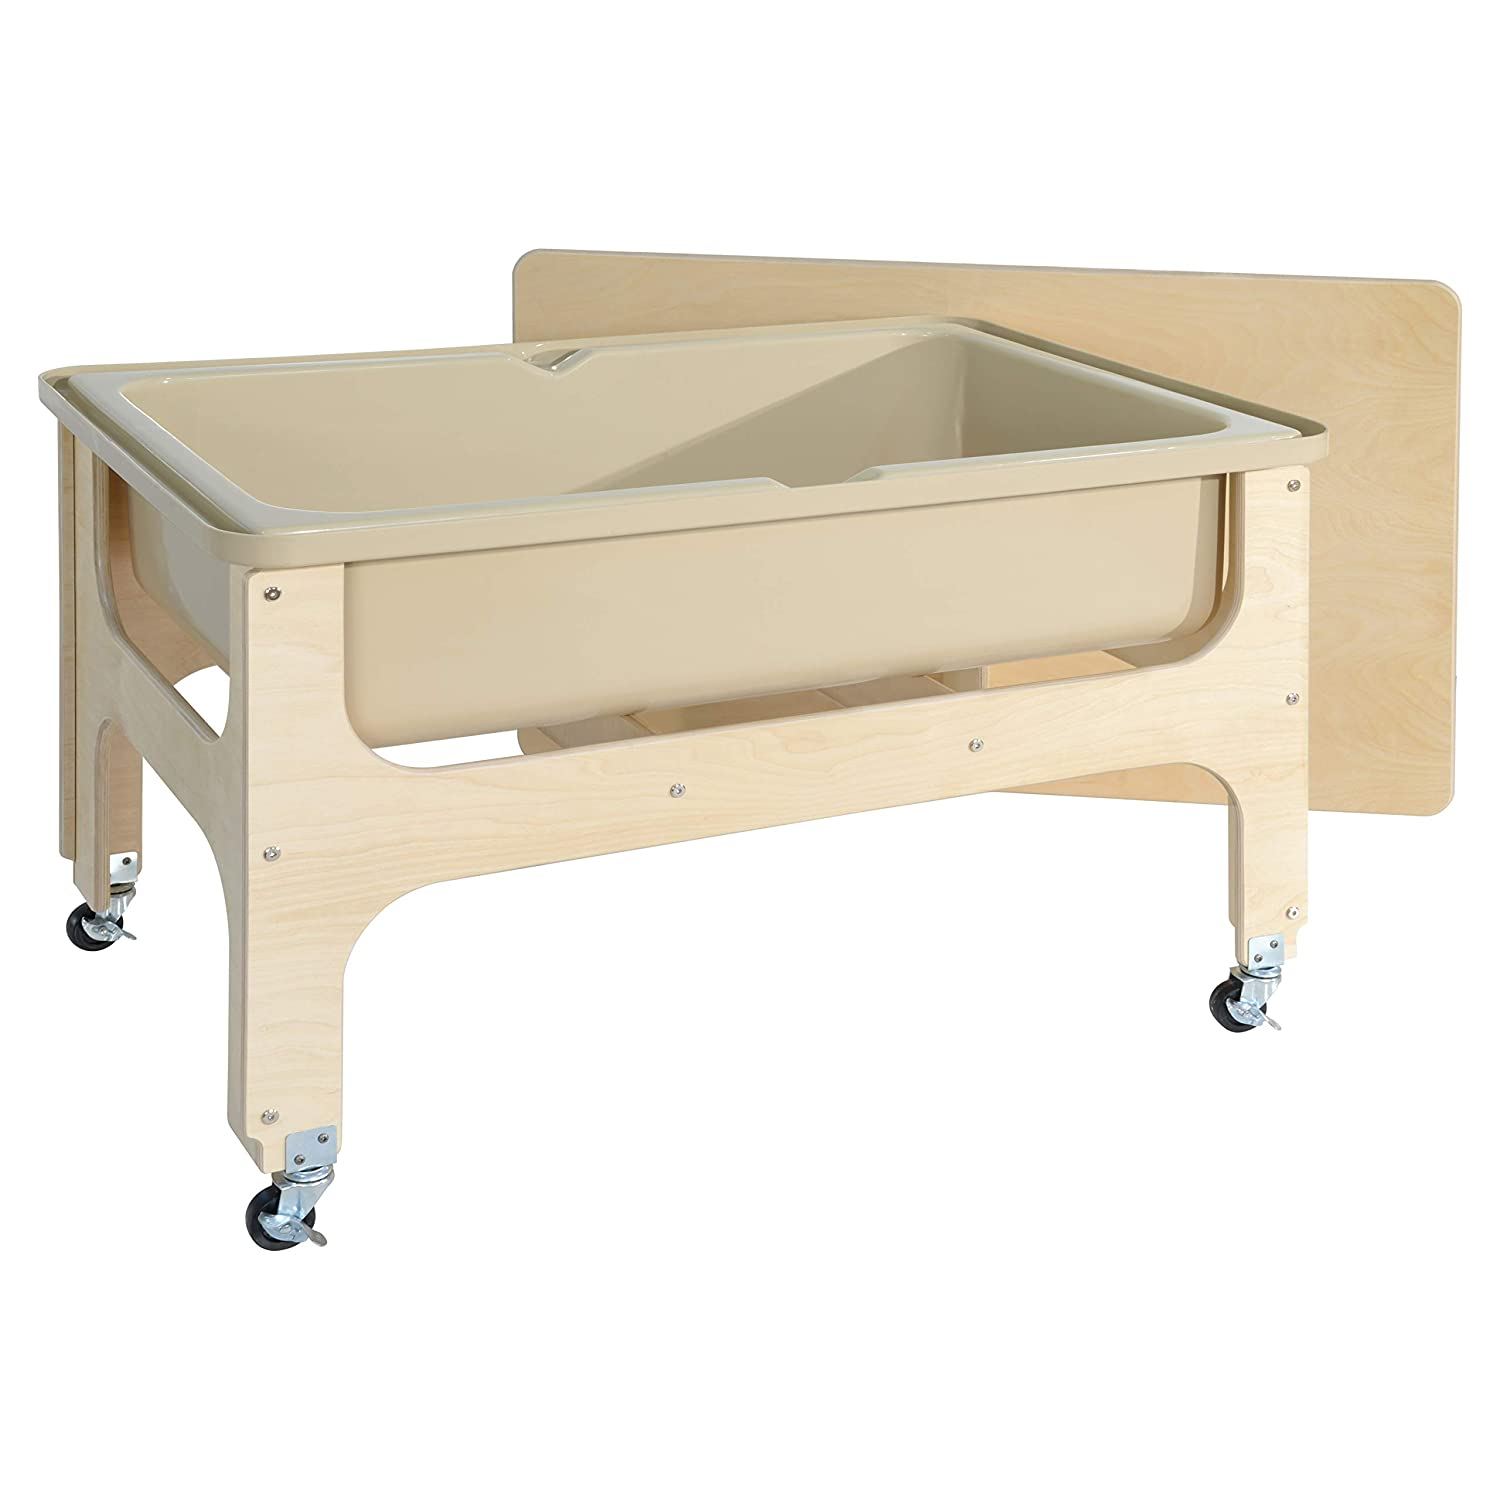 Wood Designs Deluxe Sand & Water Table with Lid